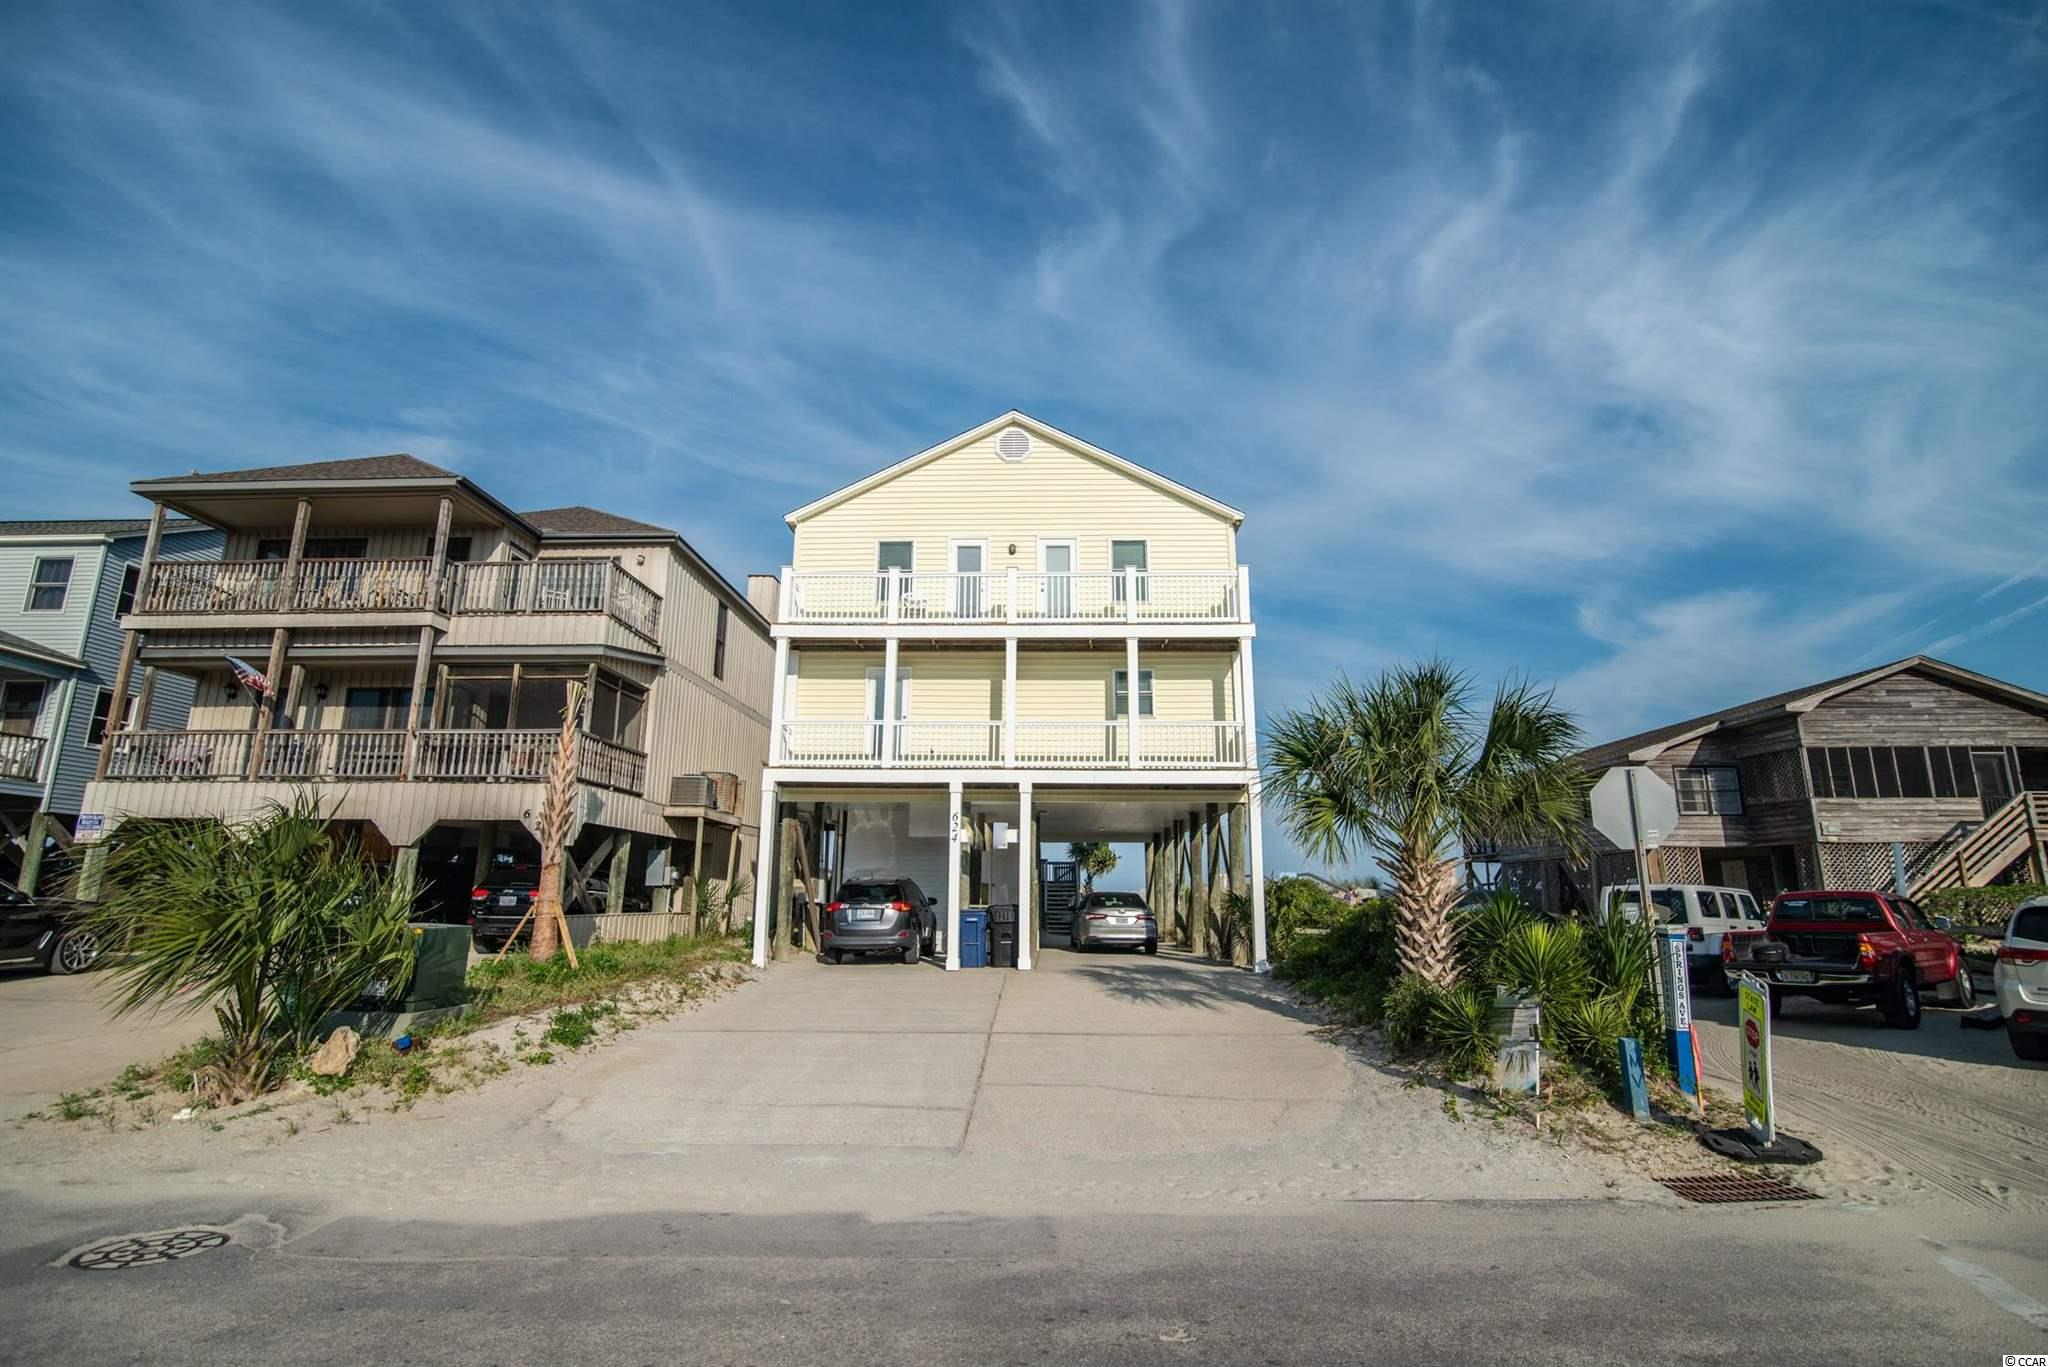 """This Pawleys Island oceanfront home enjoys a recently re-nourished beach, beautiful sunrises, and a great vacation home floor plan. Whether your needs are full time, part-time, or as an income producing beach rental """"4Hands"""" will be a great choice. First floor includes great room and huge dining area overlooking the Atlantic, the kitchen offers plenty of counter and storage space, and a full bath and a bedroom with balcony. Upstairs you will find four additional guest rooms, two baths, and a laundry room. Plenty of closets throughout and large enclosed storage underneath as well as parking. Great  decks front and rear on each floor to absorb the sun and ocean breezes. Pier and deck over the dunes for seating and private access. Short drive to Pawleys creek, dining, shopping, numerous golf courses, and intra-coastal waterway access."""